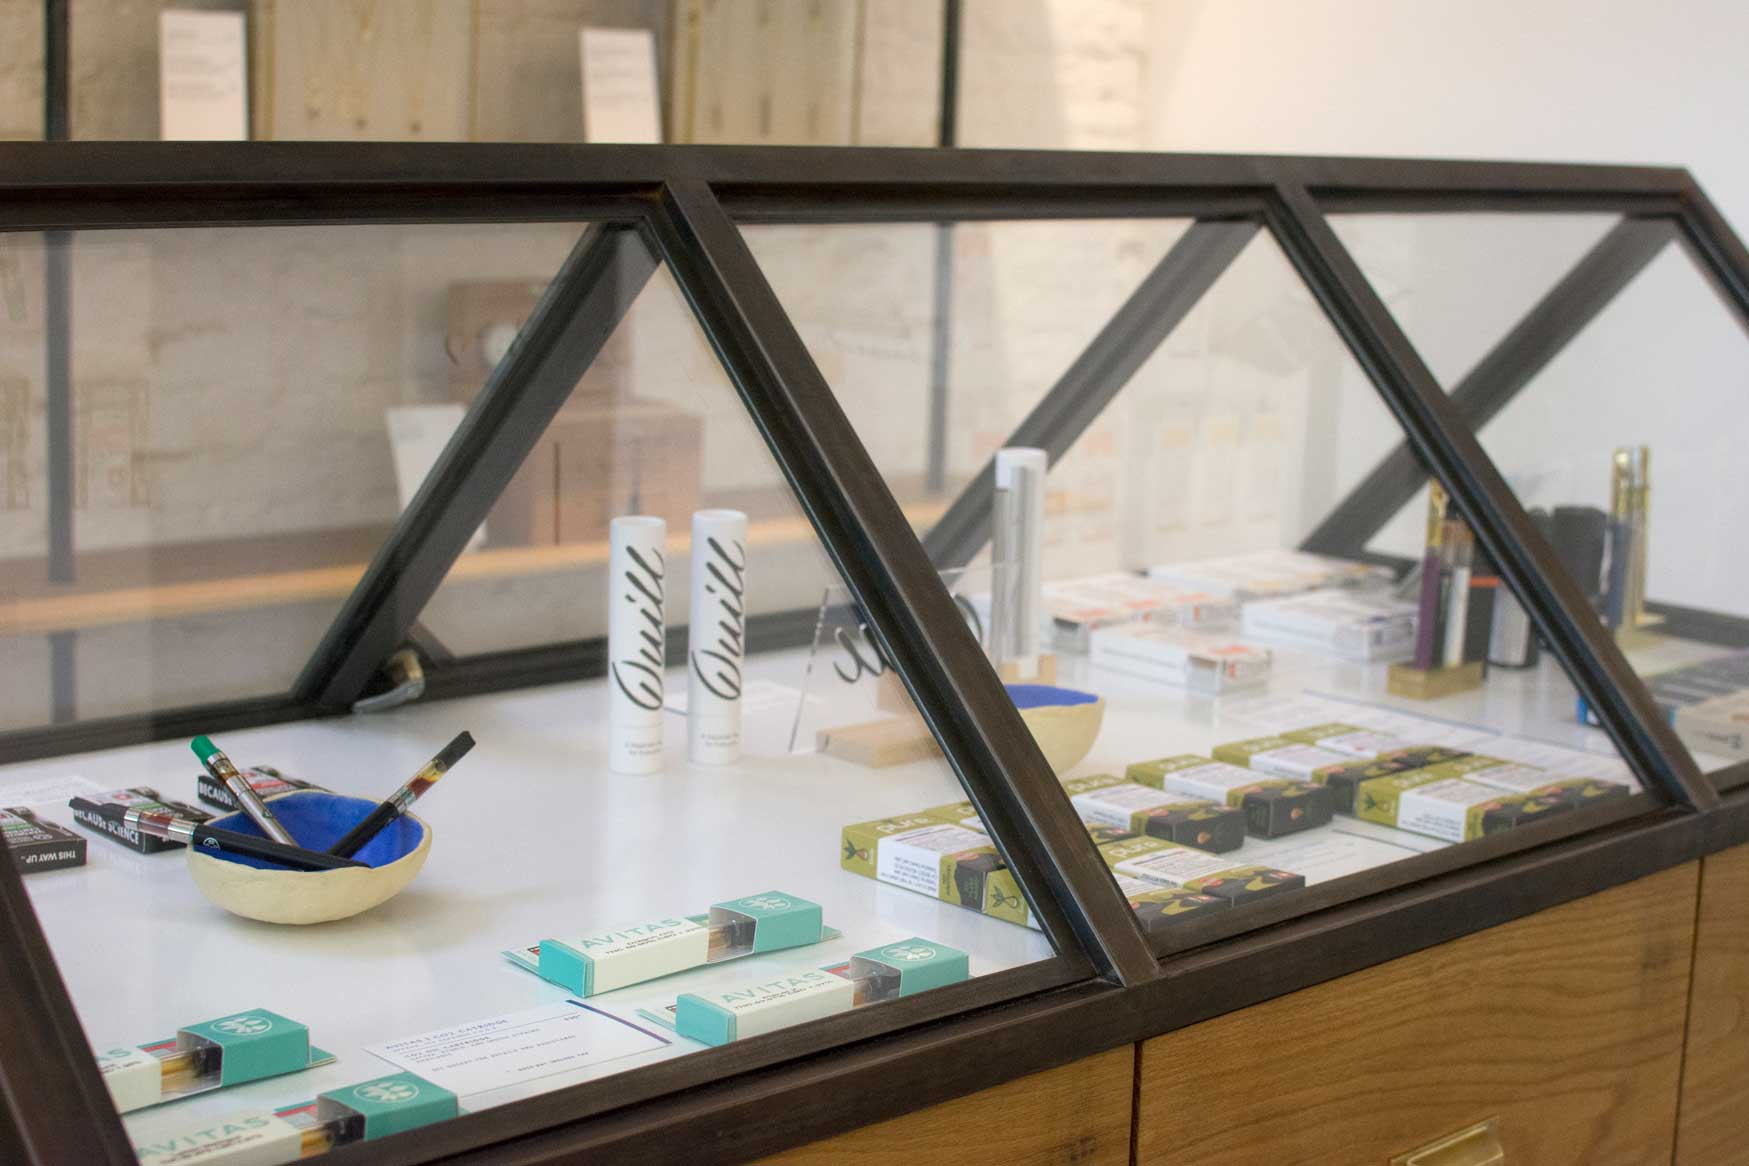 Concentrates and vaporizers display